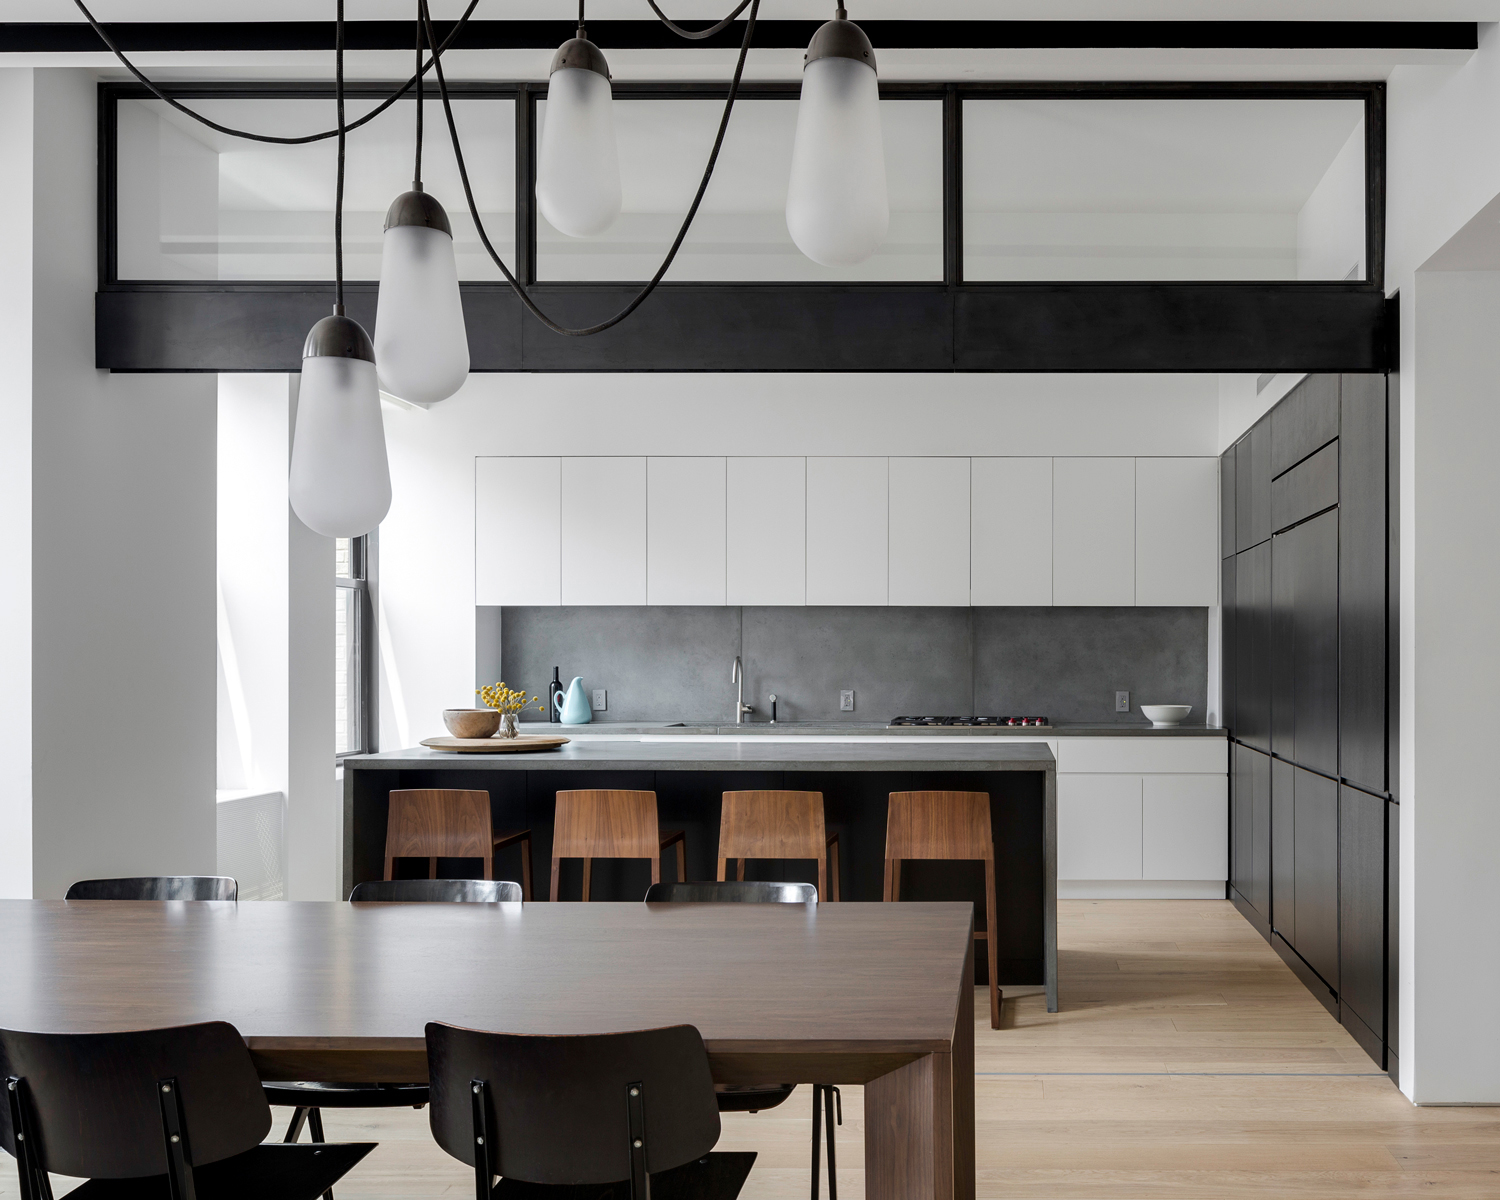 Architectural Photography New York RAAD Studio Kitchen & Dining